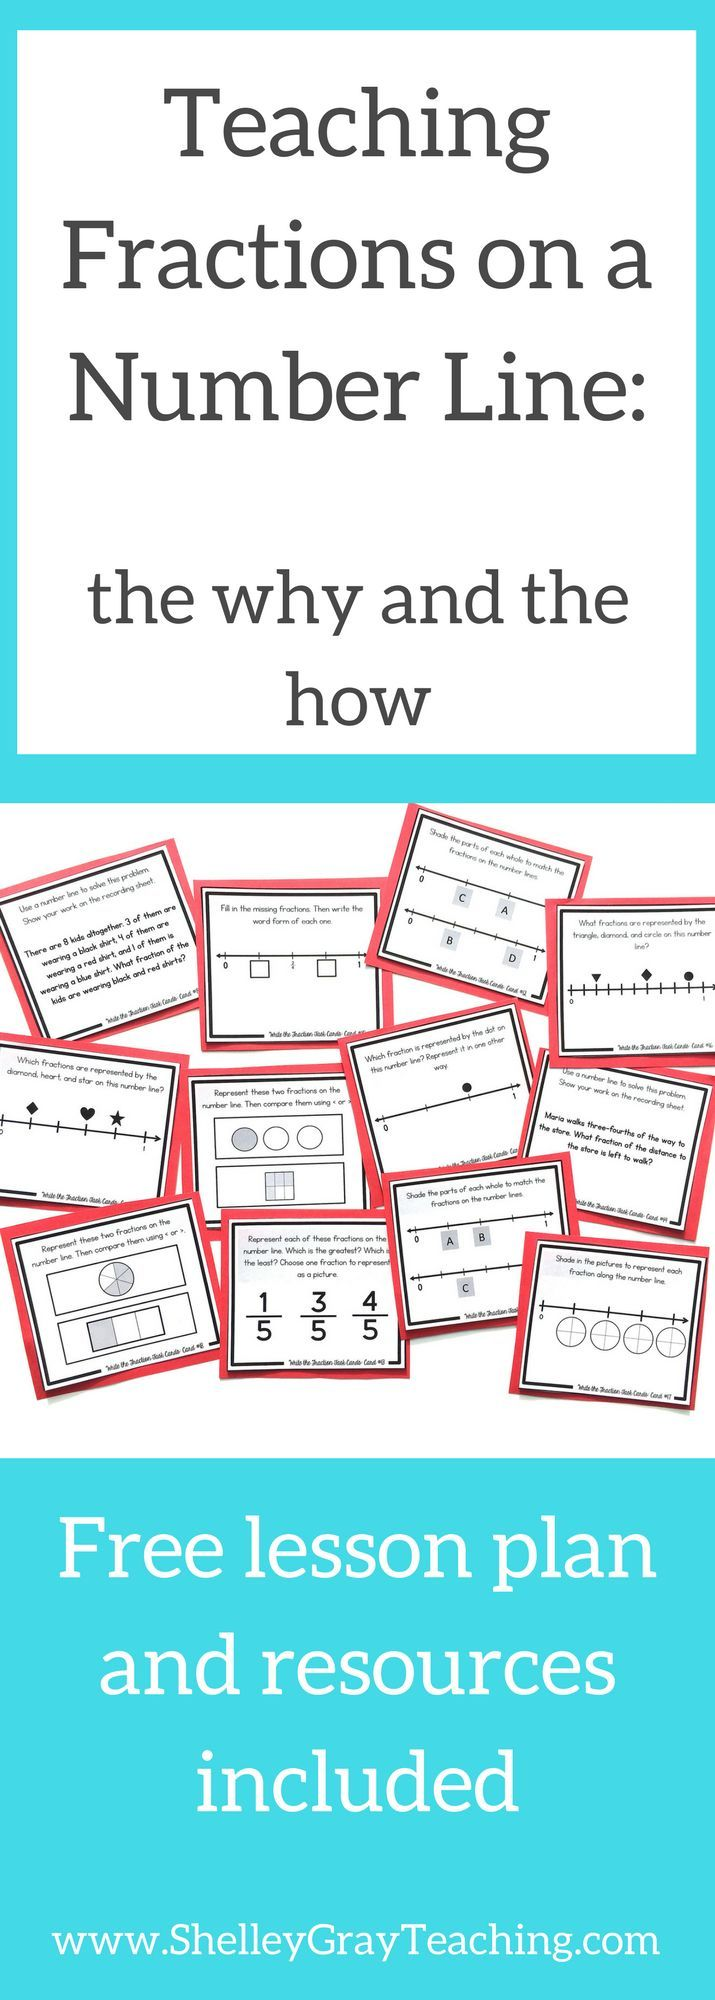 How to Teach Fractions on a Number Line (with a free lesson plan ...